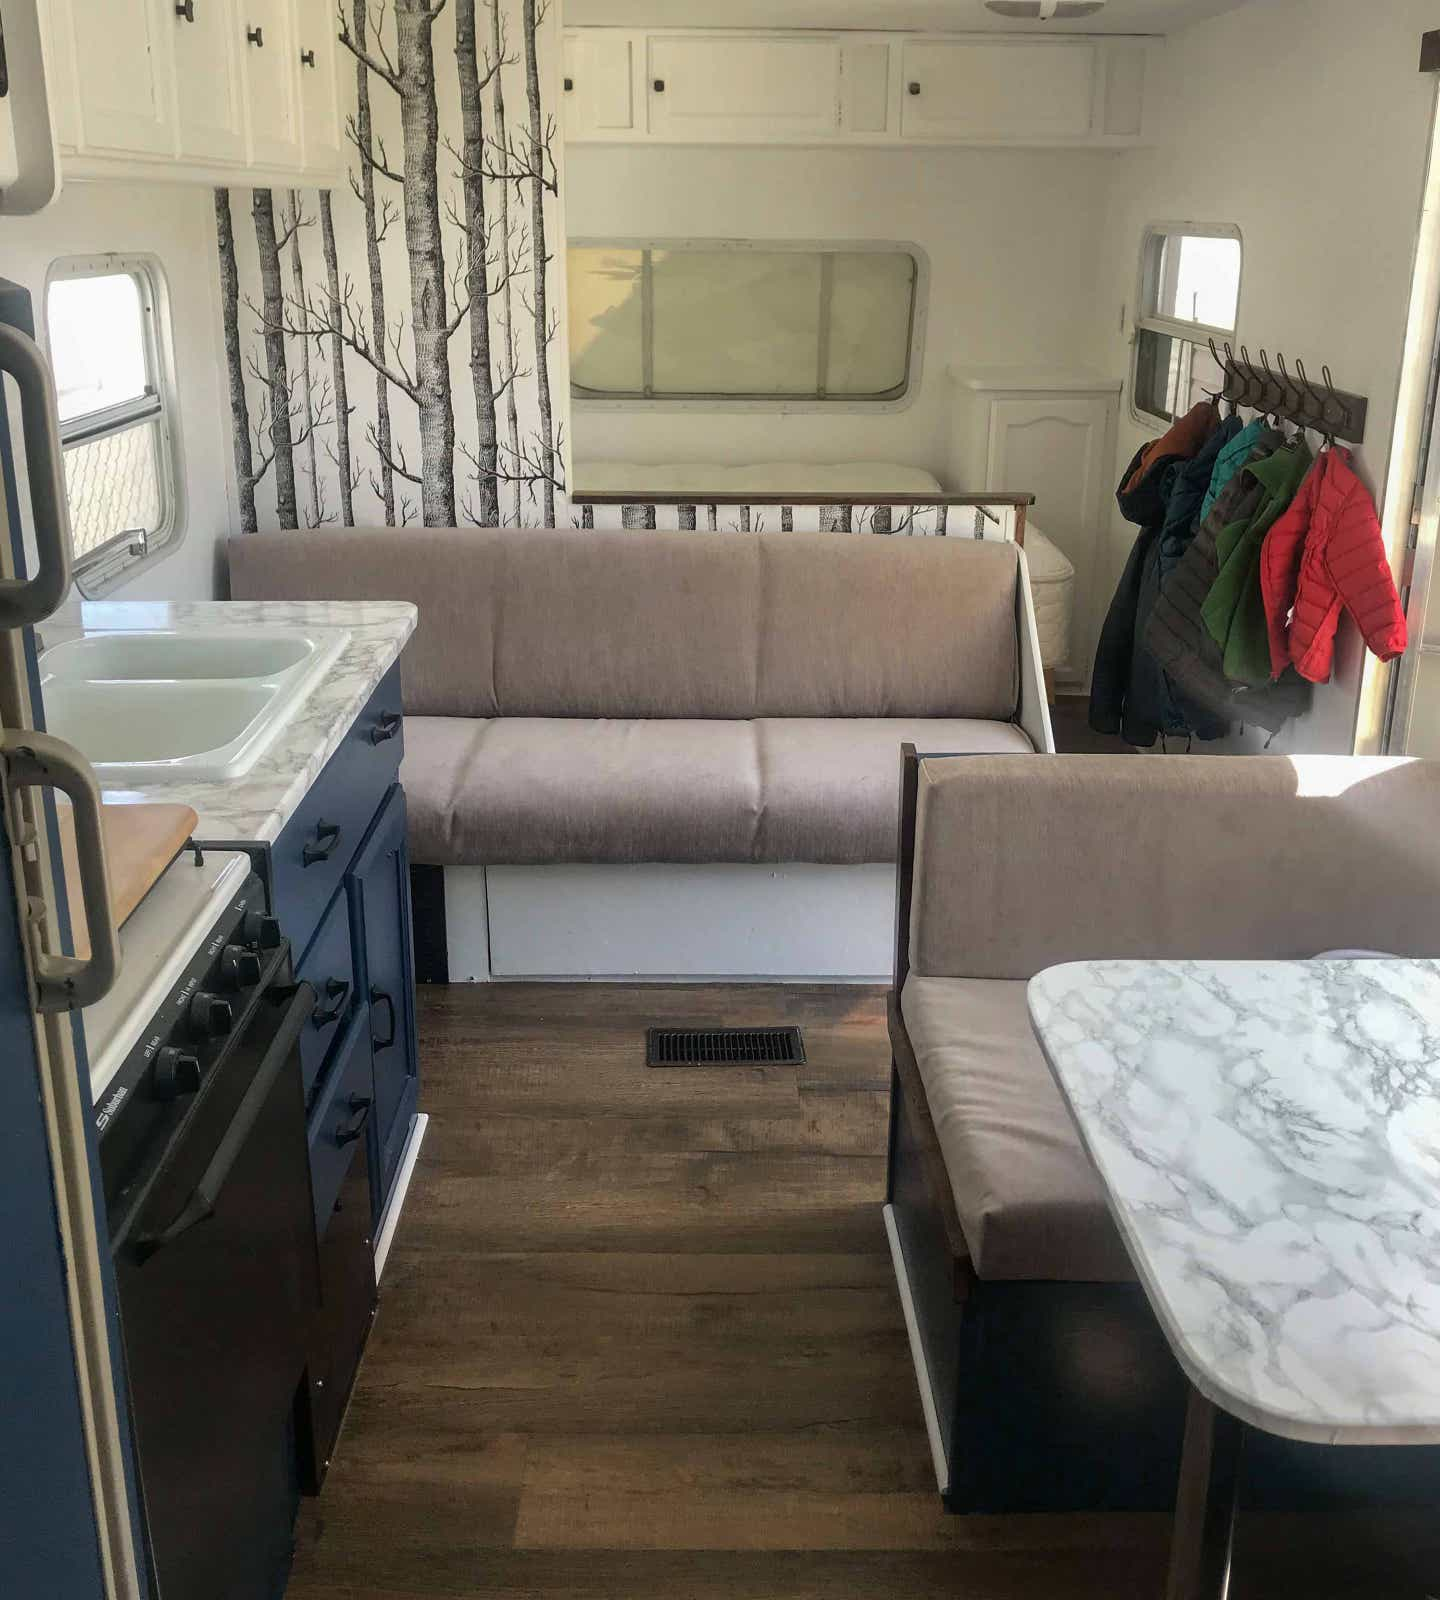 Kitchen in RV